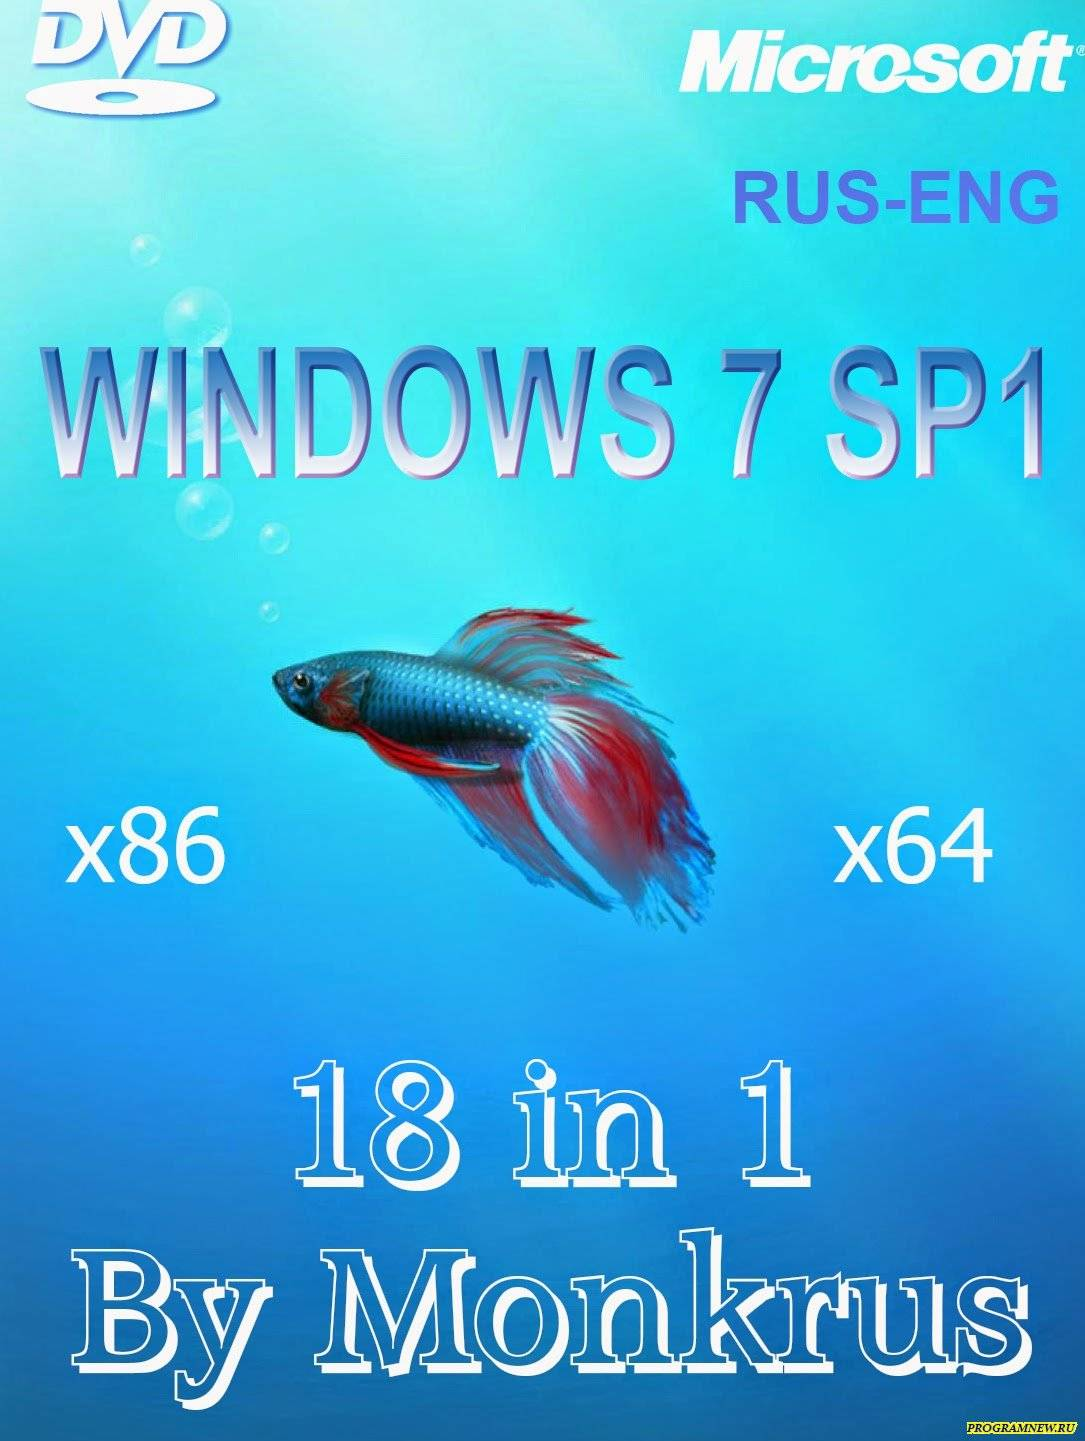 Windows 7 SP1 x86-x64 -18in1- Activated